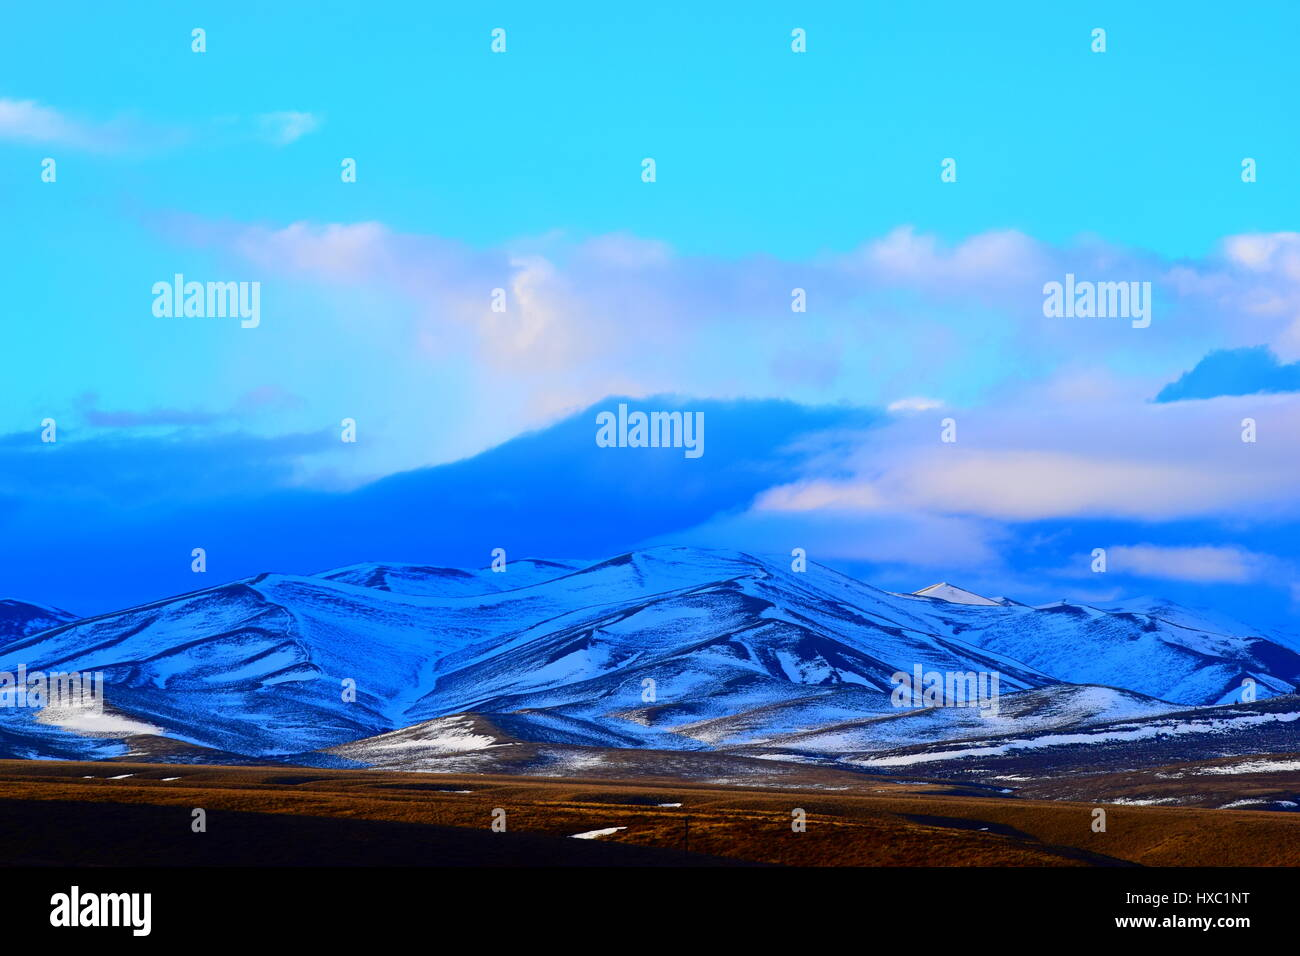 Snowy Idaho Mountains